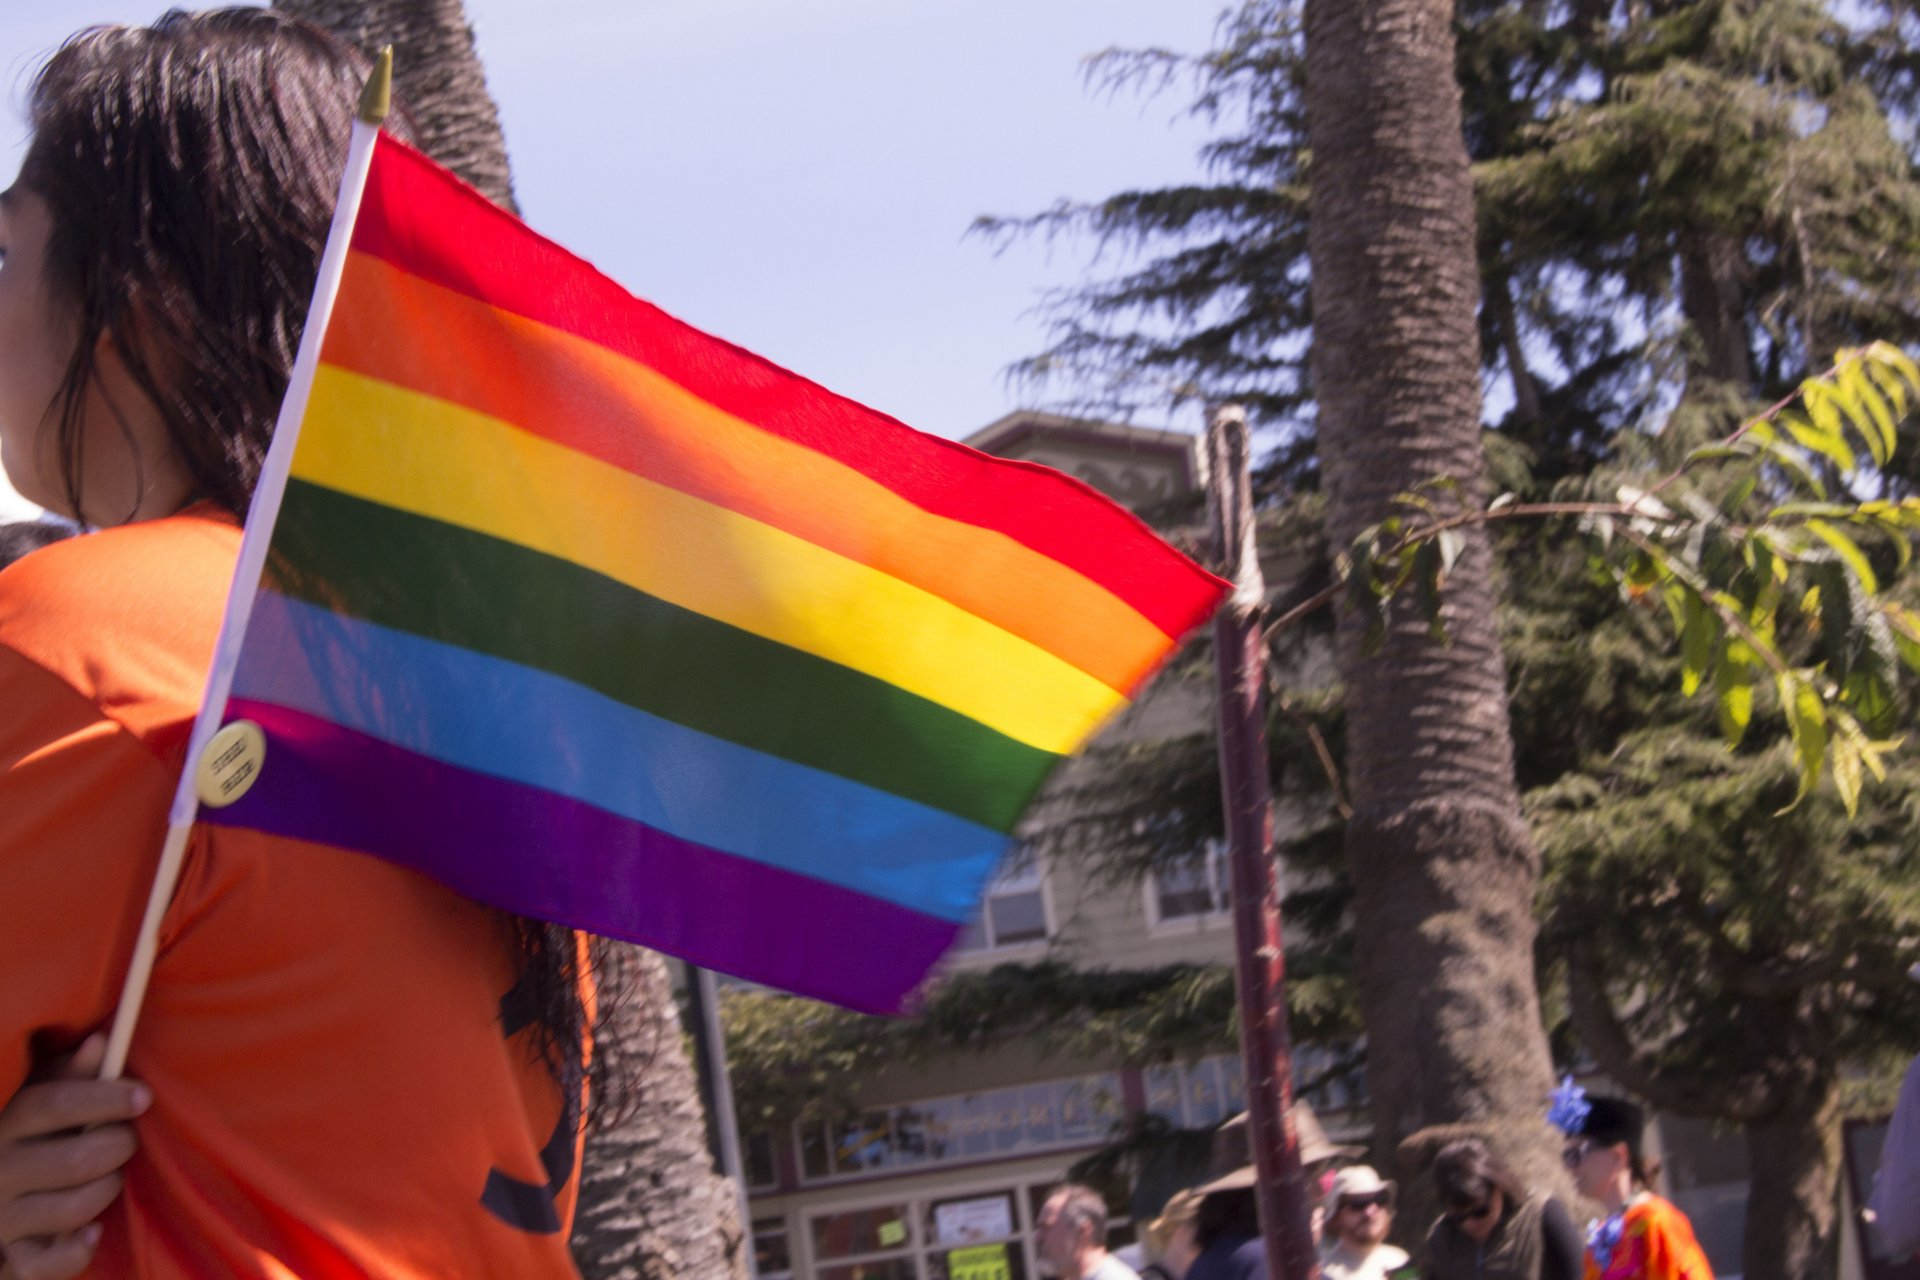 Humboldt pride took place in the Arcata square, September 24th. Close up on rainbow flag. | Kyra Skylark